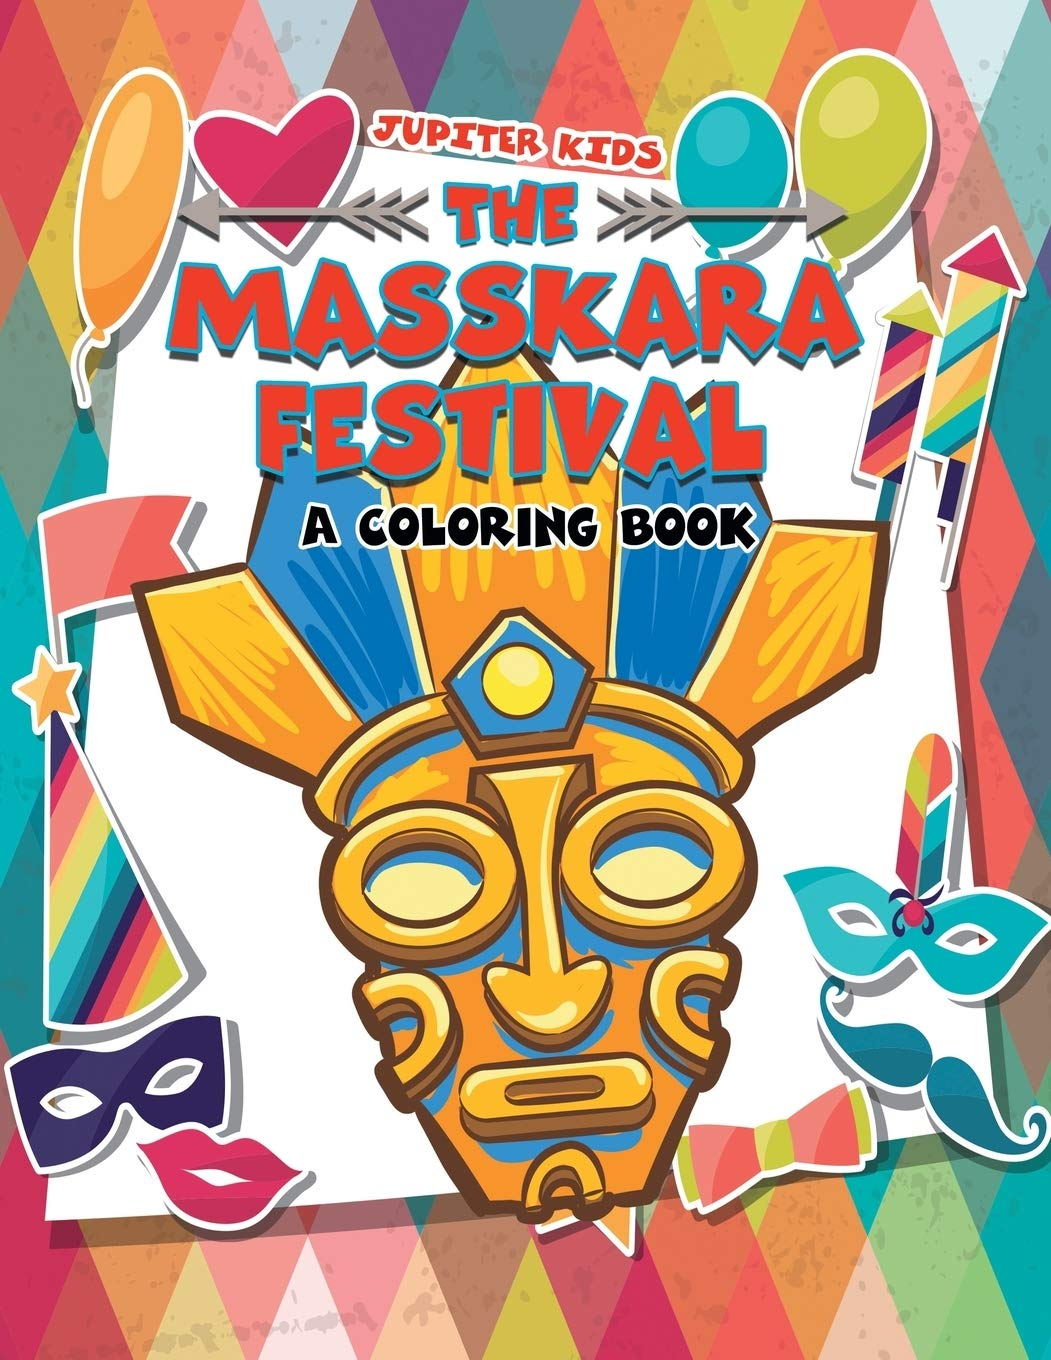 Buy The Masskara Festival A Coloring Book Book Online At Low Prices In India The Masskara Festival A Coloring Book Reviews Ratings Amazon In